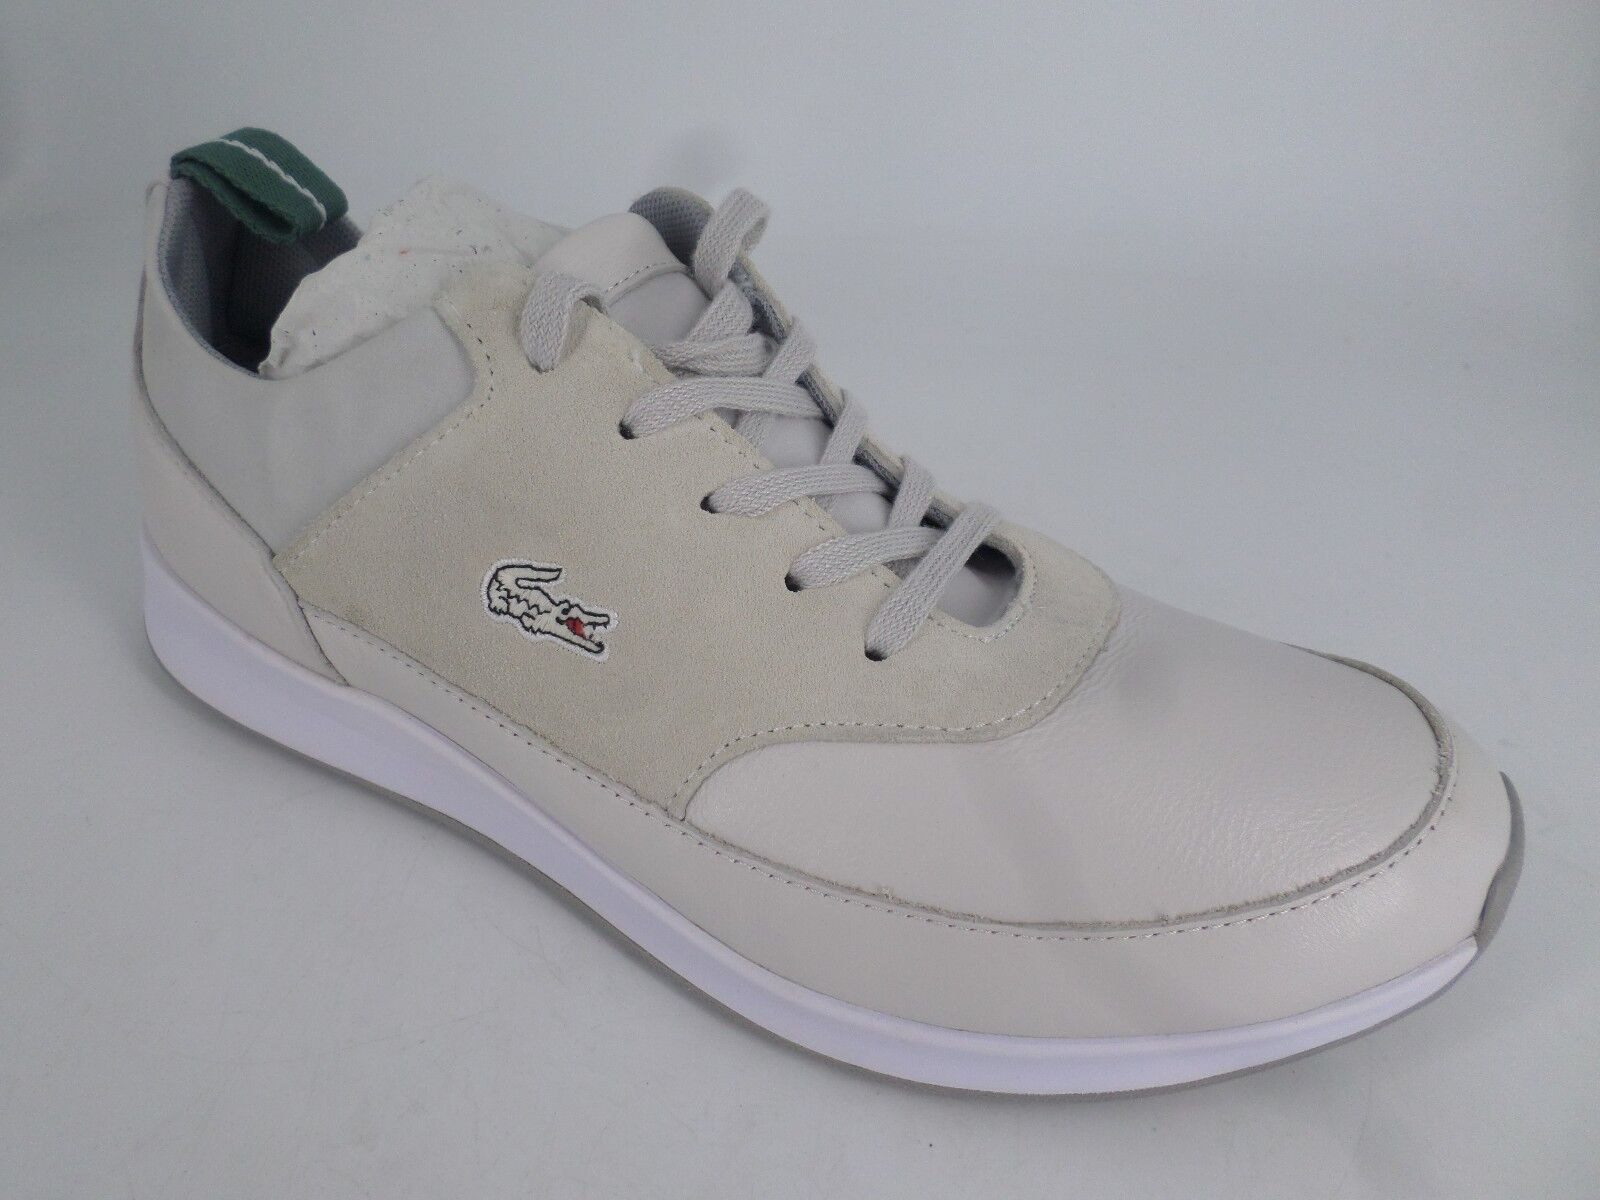 0fe823ce79b1 Lacoste Joggeur Premium Leather suede off White Trainers UK 5 EU 38 ...